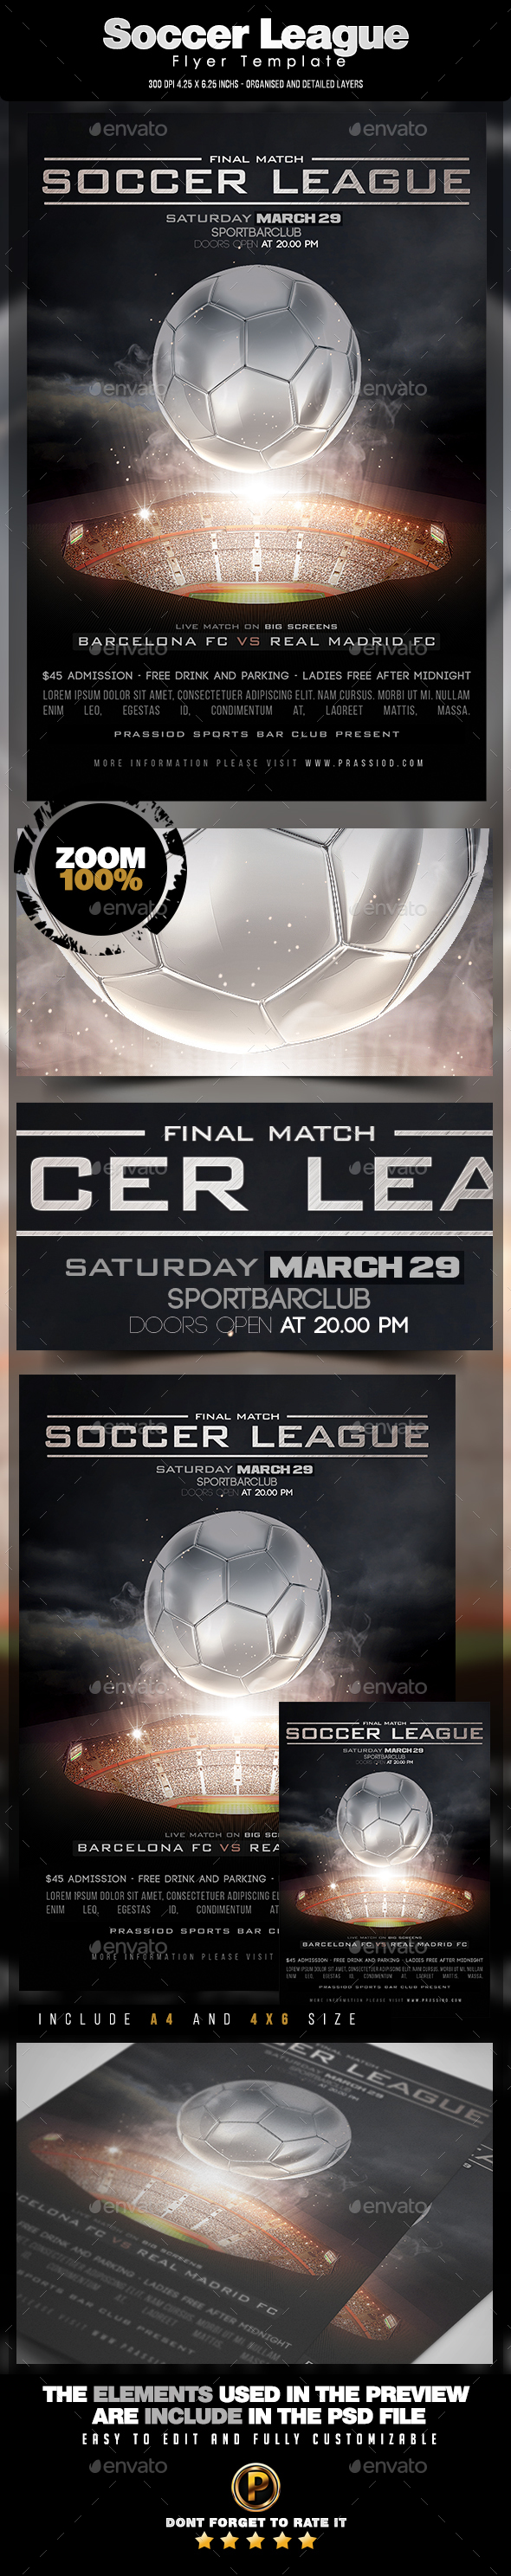 Soccer League Flyer Template - Sports Events